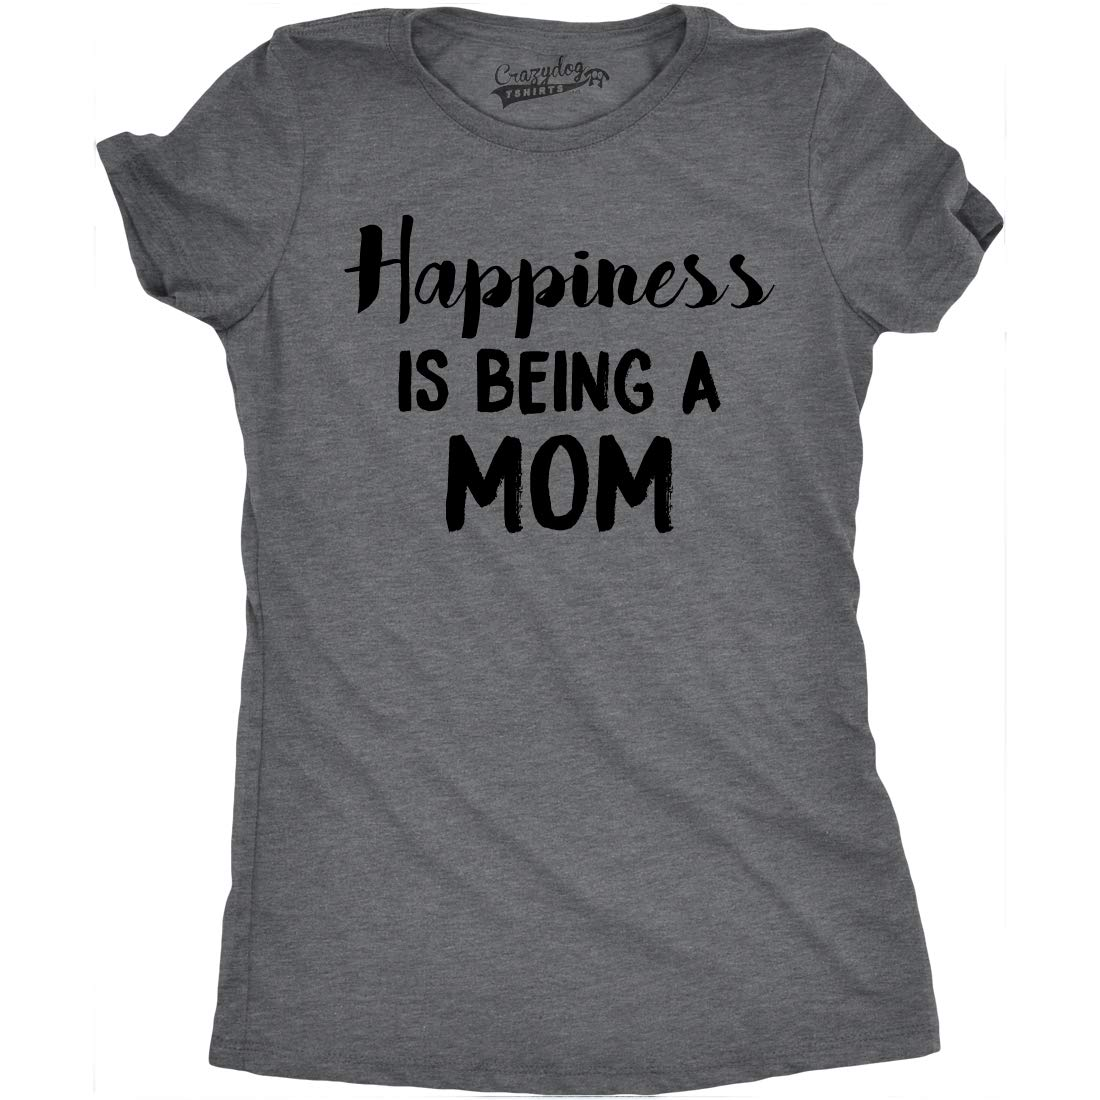 Happiness Is Being A Mom Tshirt Funny Mothers Day Family Tee